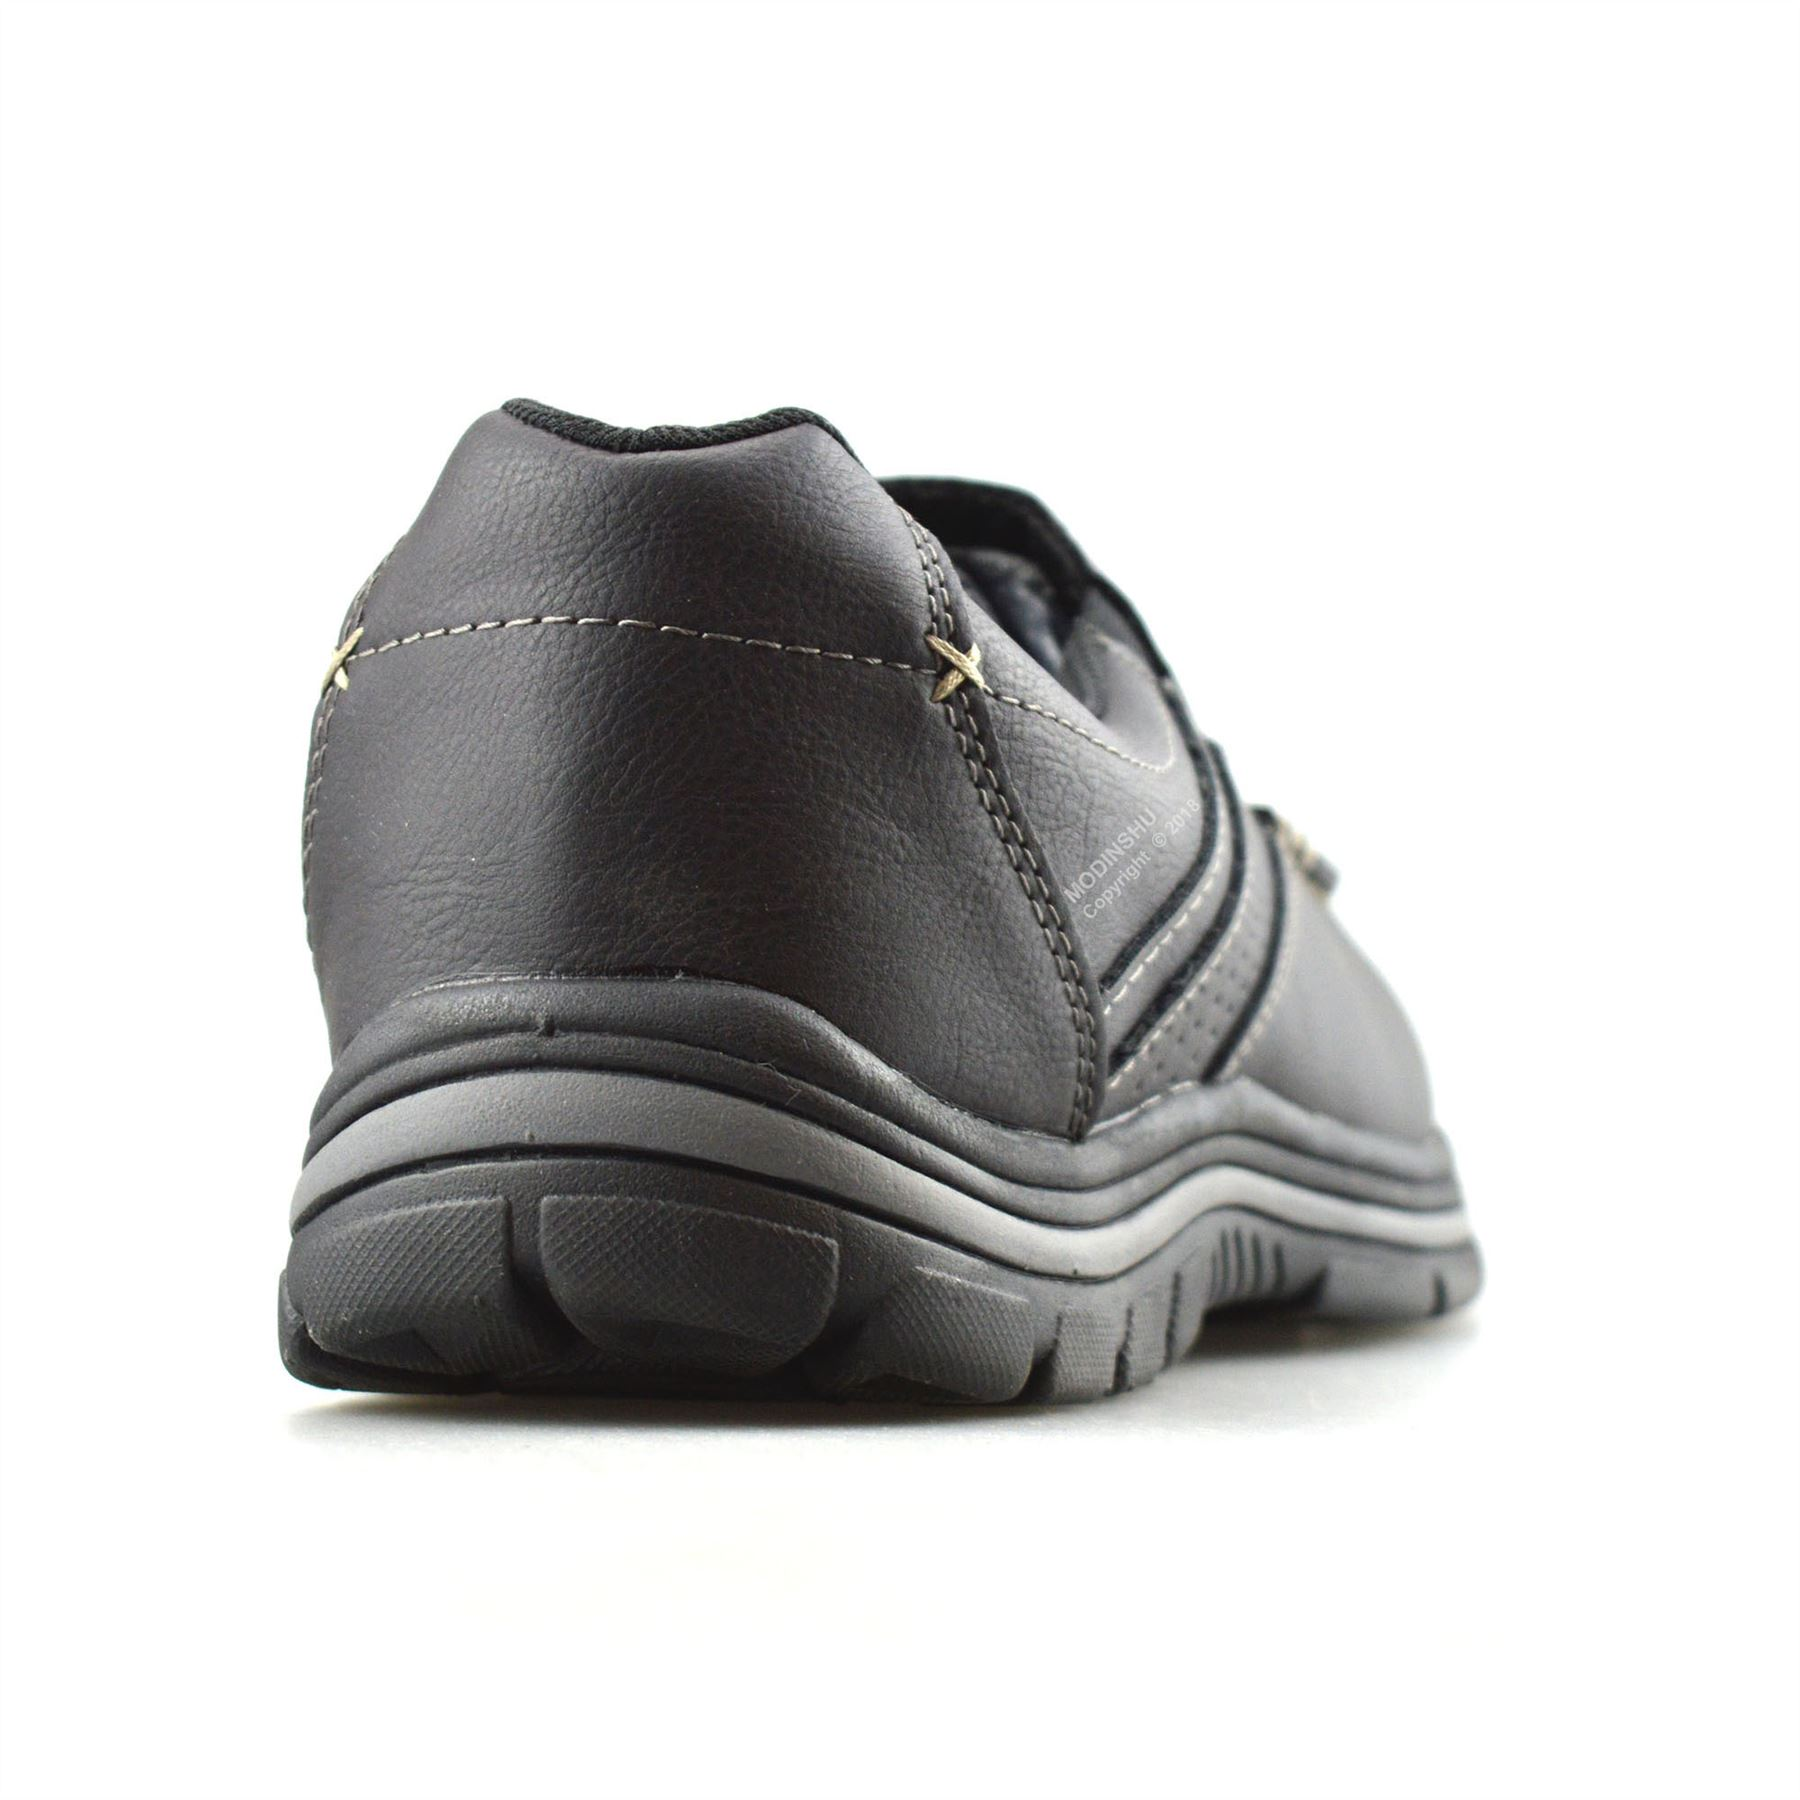 Mens-Casual-Memory-Foam-Slip-On-Walking-Moccasin-Loafers-Driving-Boat-Shoes-Size thumbnail 14